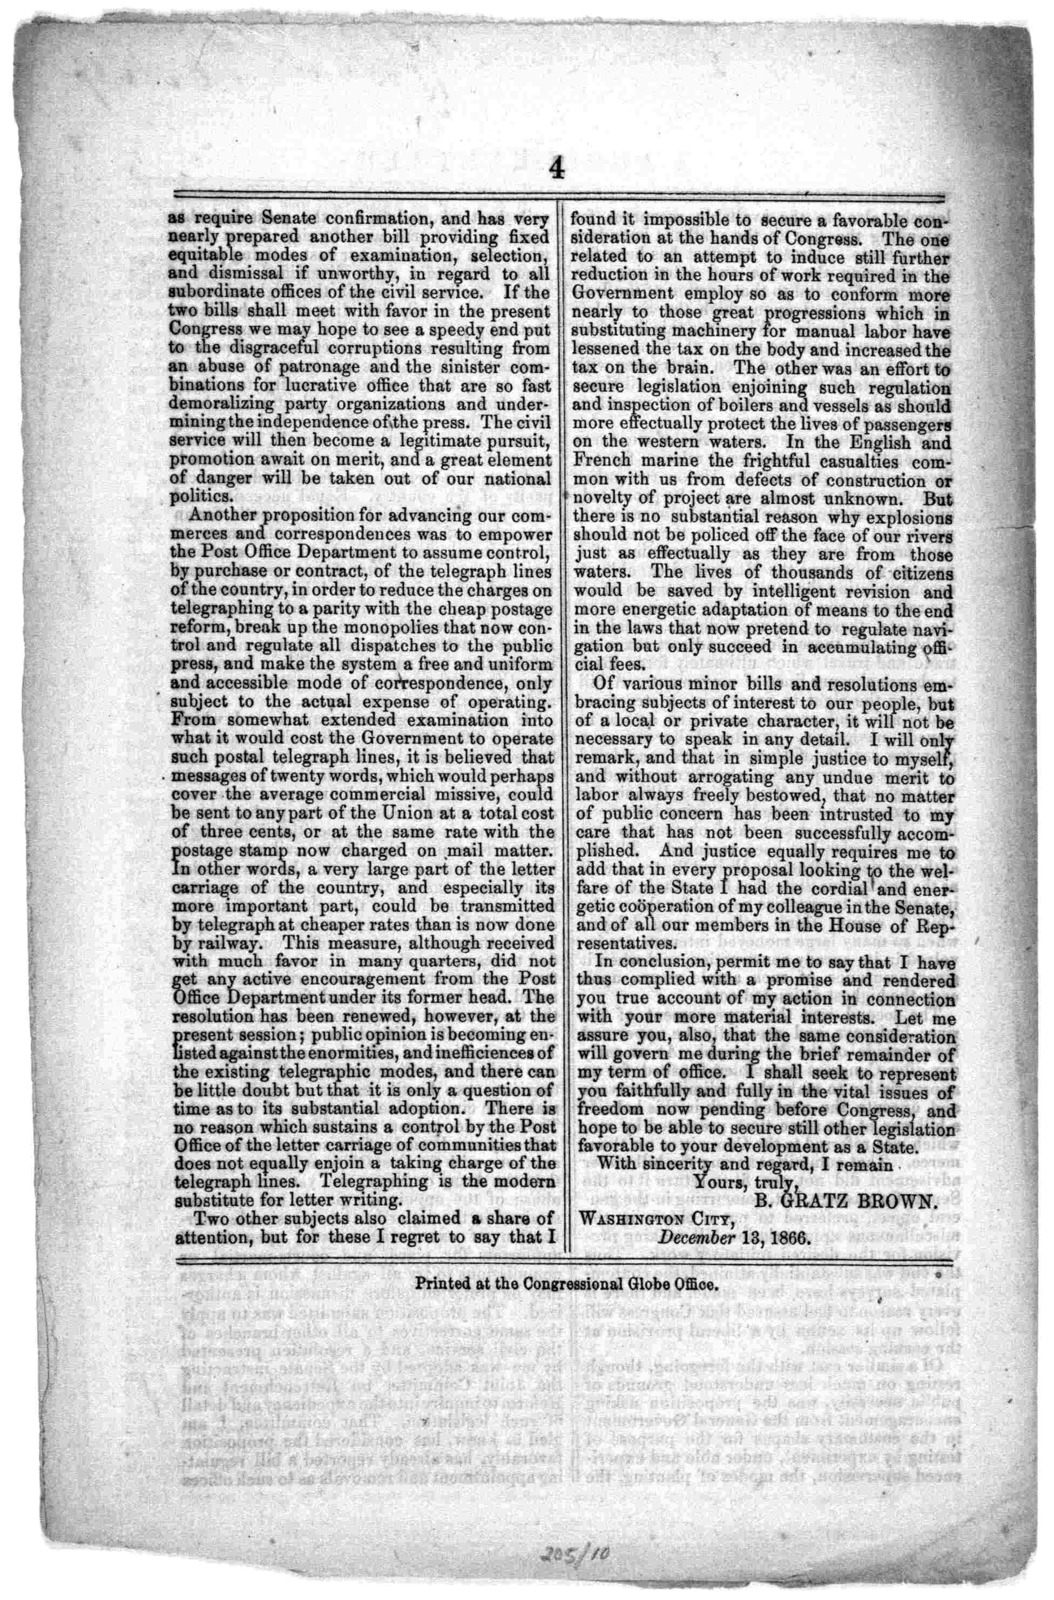 A public letter from Hon. B. Gratz Brown to the people of Missouri. Washington City, December 13, 1866. Printed at the Congressional Globe office.